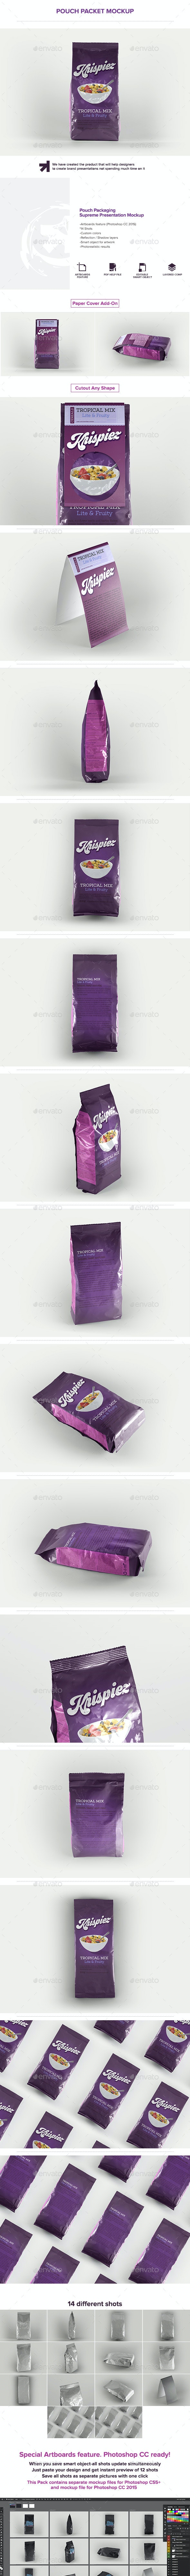 Pouch Packet Packaging Mockup - Food and Drink Packaging